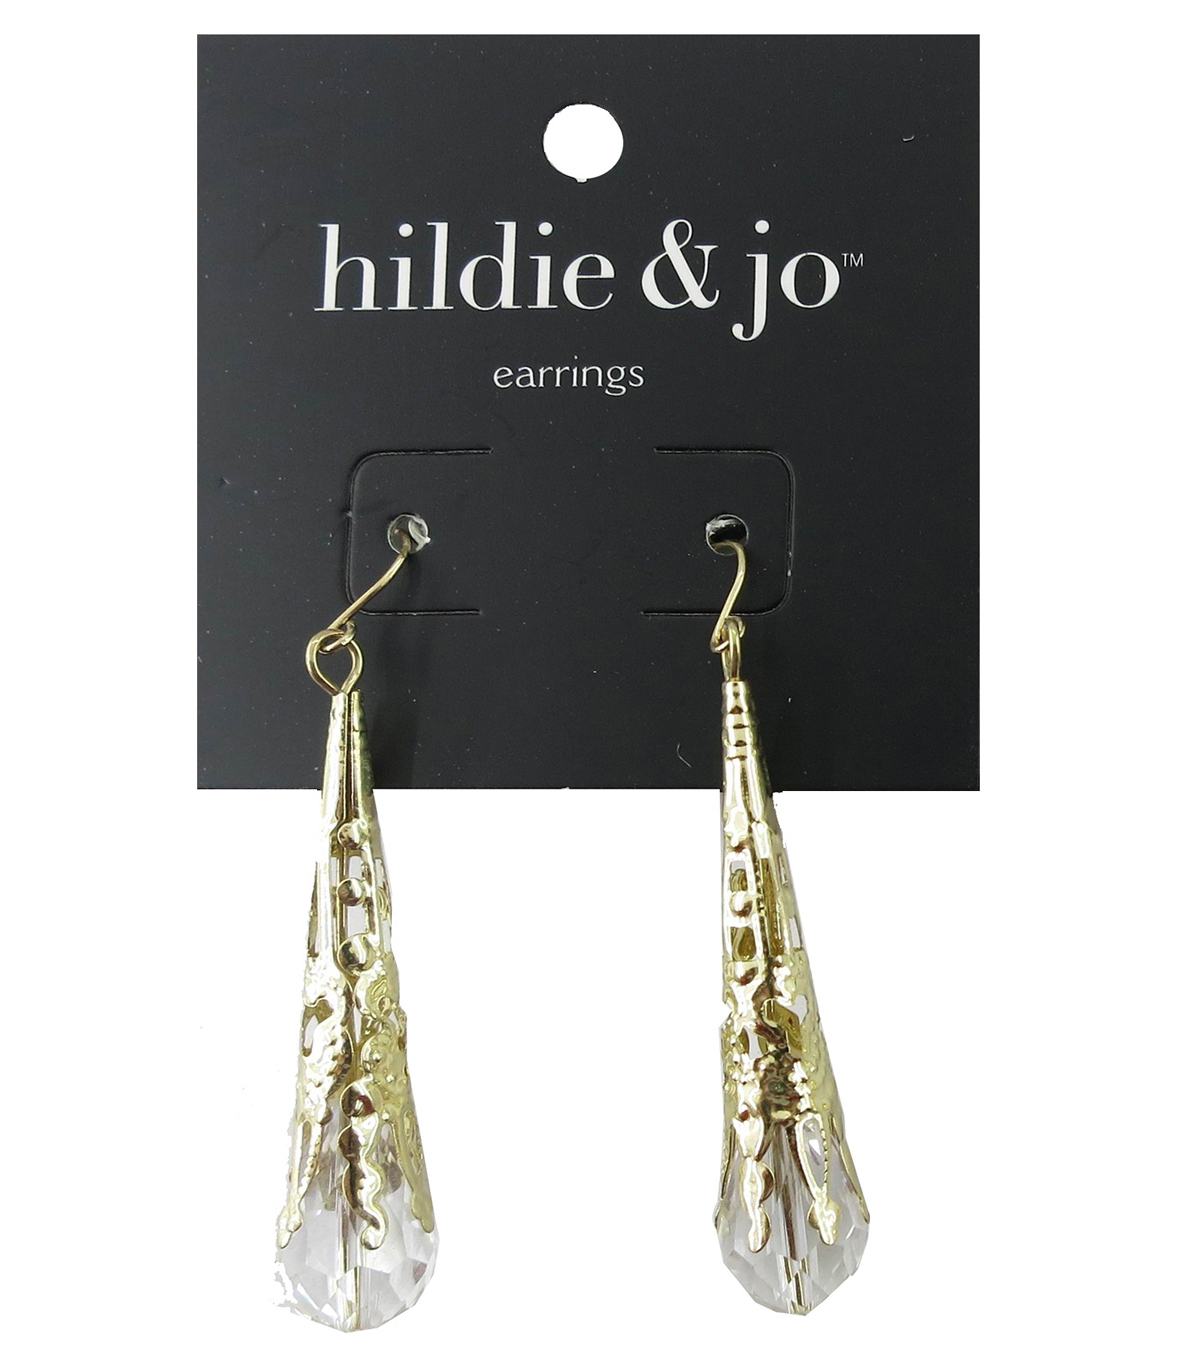 hildie & jo 2\u0027\u0027x0.38\u0027\u0027 Gold Earrings-Oblong Rhinestone Drop